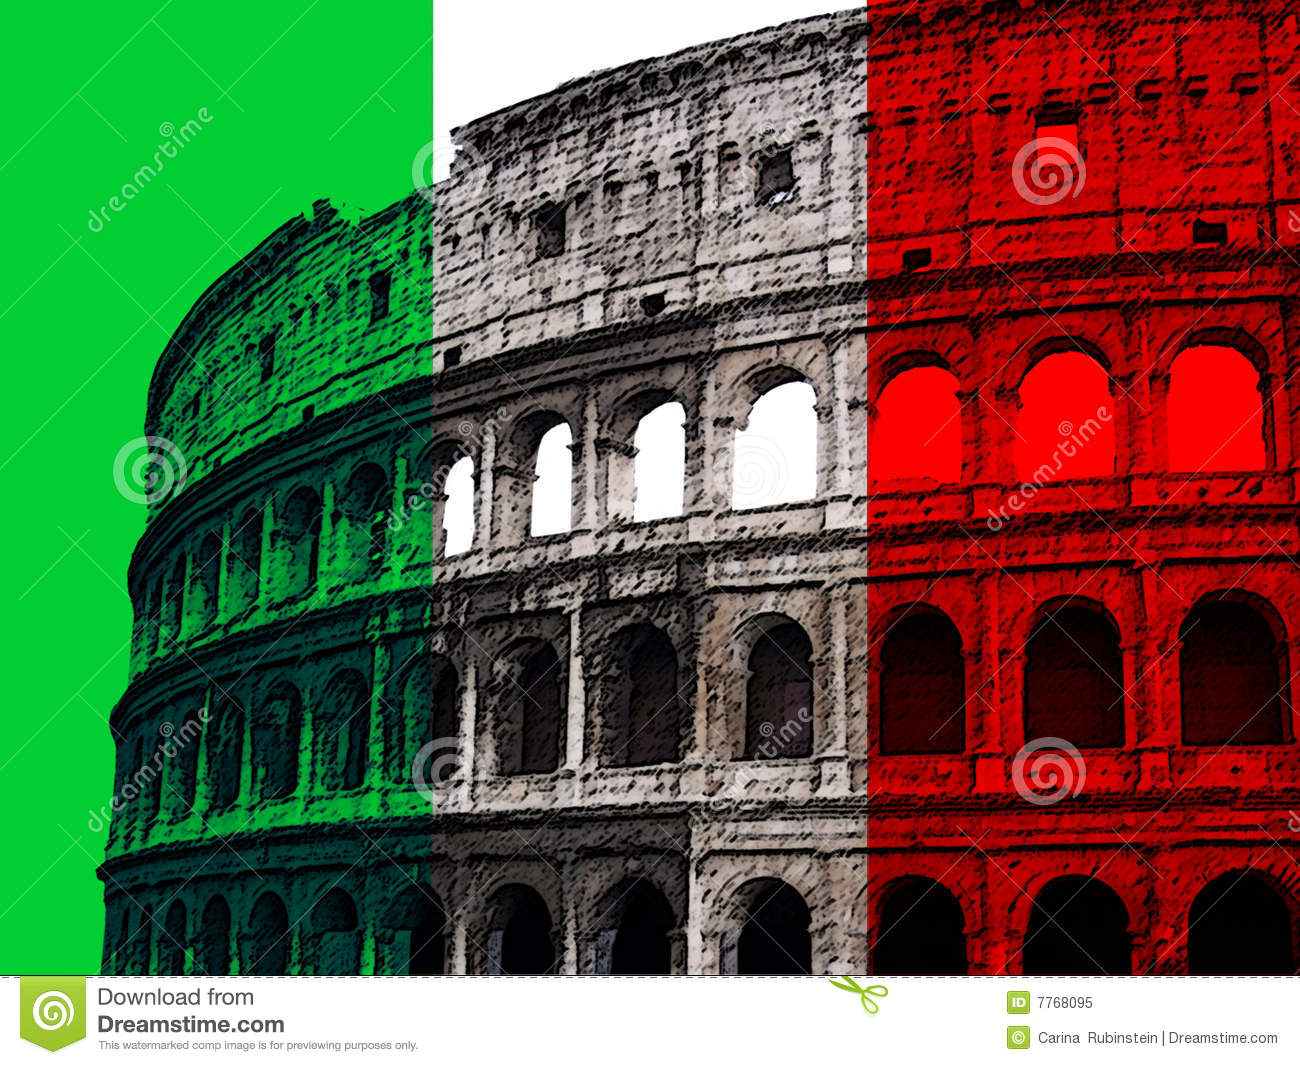 map of italian city states with Royalty Free Stock Photo Coliseum Italian Flag Image7768095 on Unification Of Italy And Germany together with History 14 as well New England In The Fall together with Maps Ancient And Medieval History furthermore Strawberry Hill Rummage Sale.